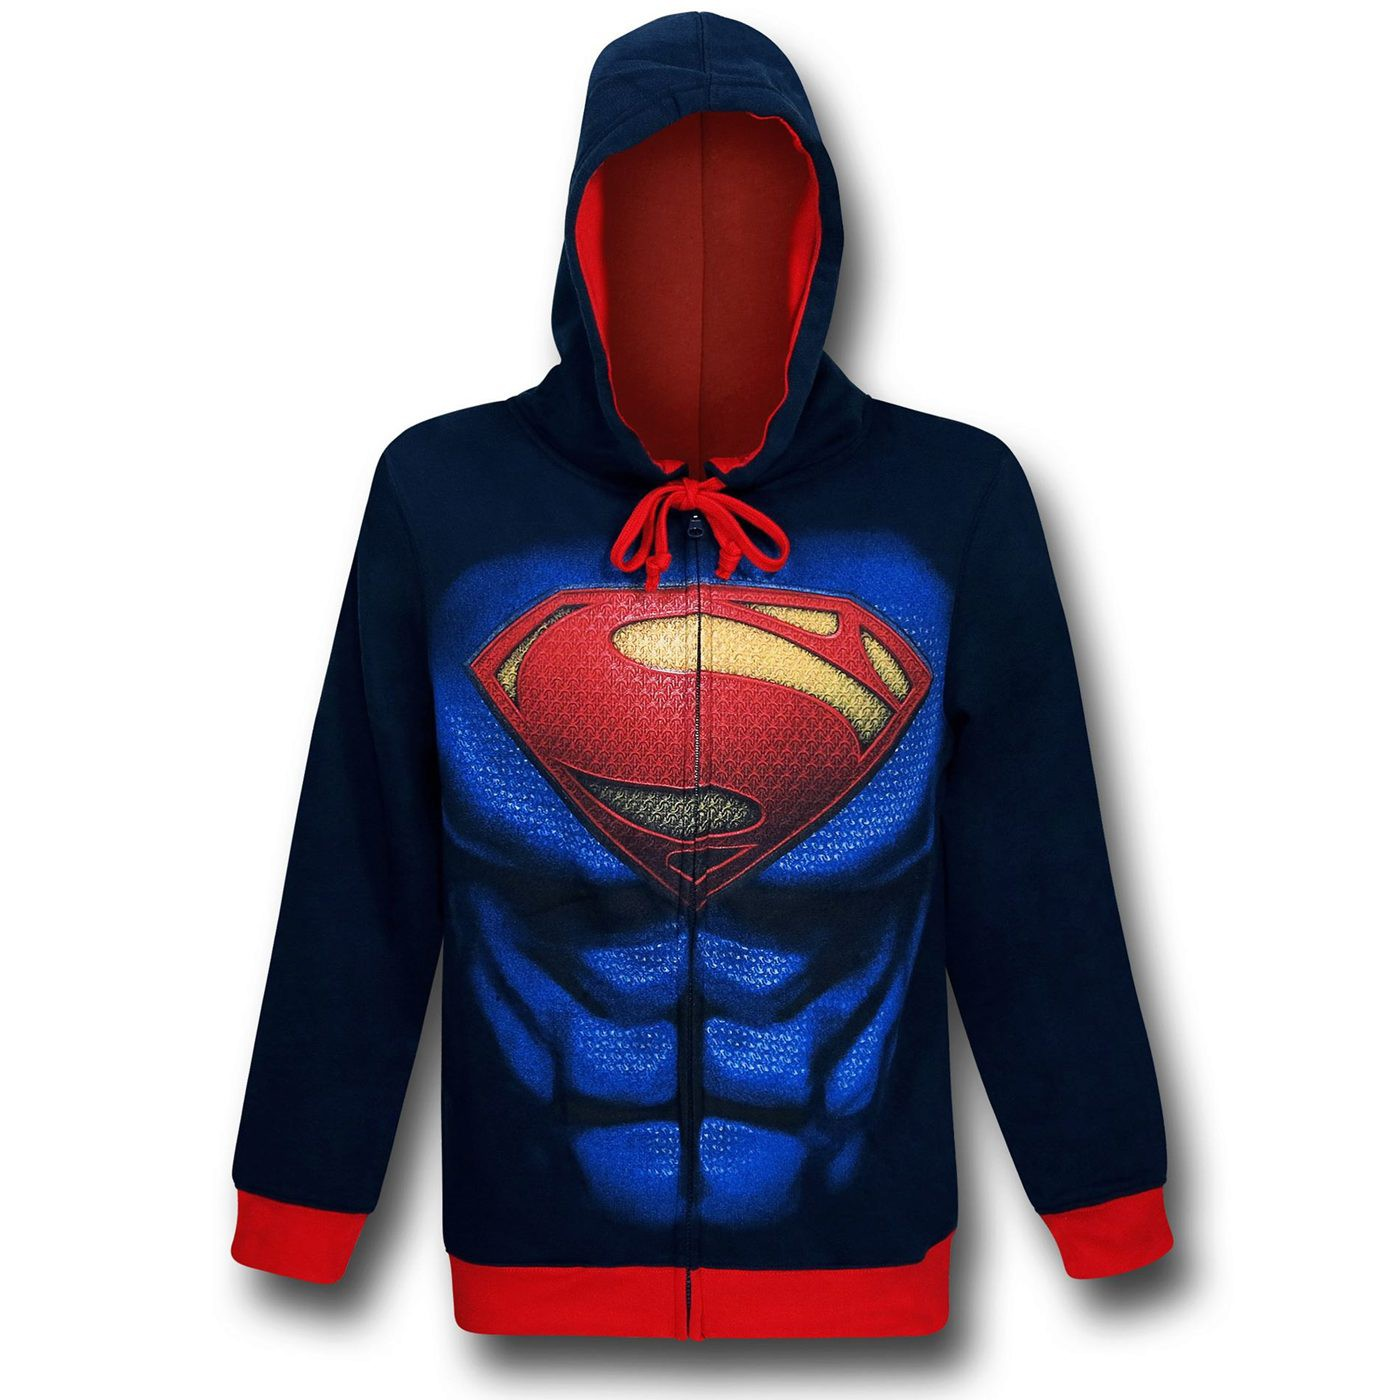 Superman Man of Steel Armor Costume Hoodie